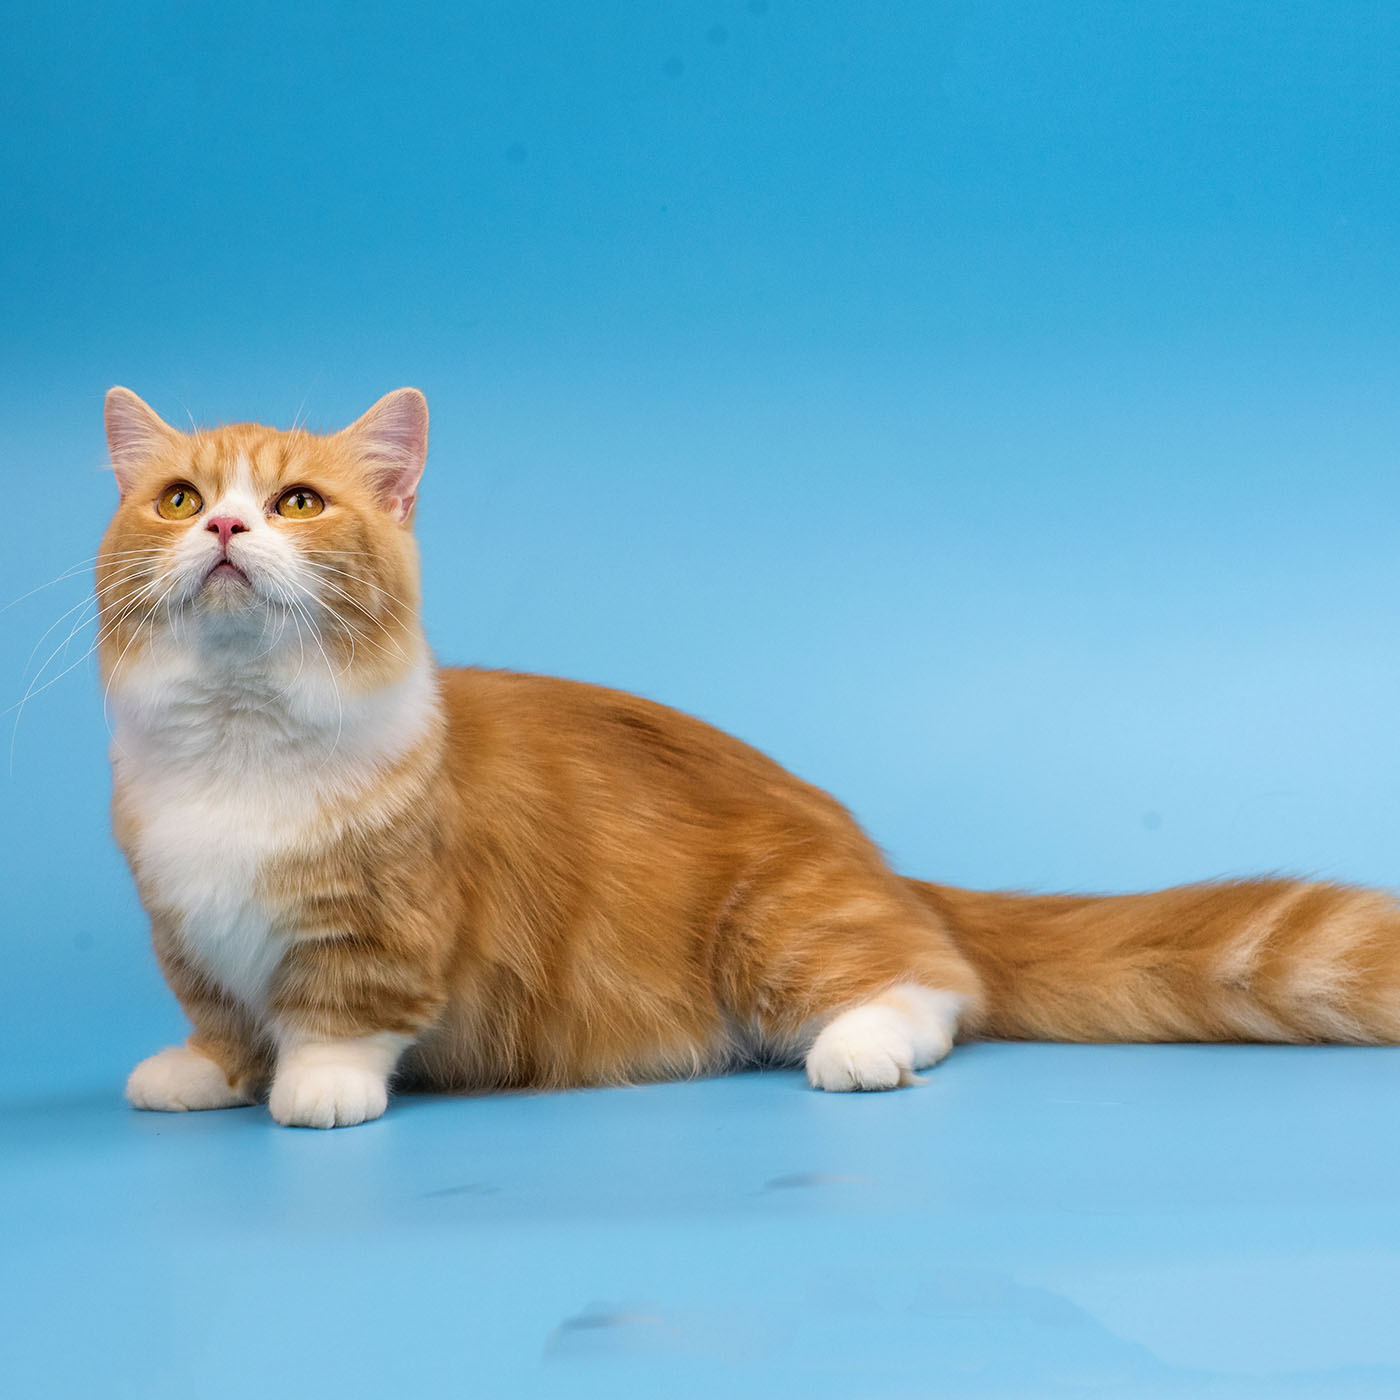 orange munchkin cat on blue background